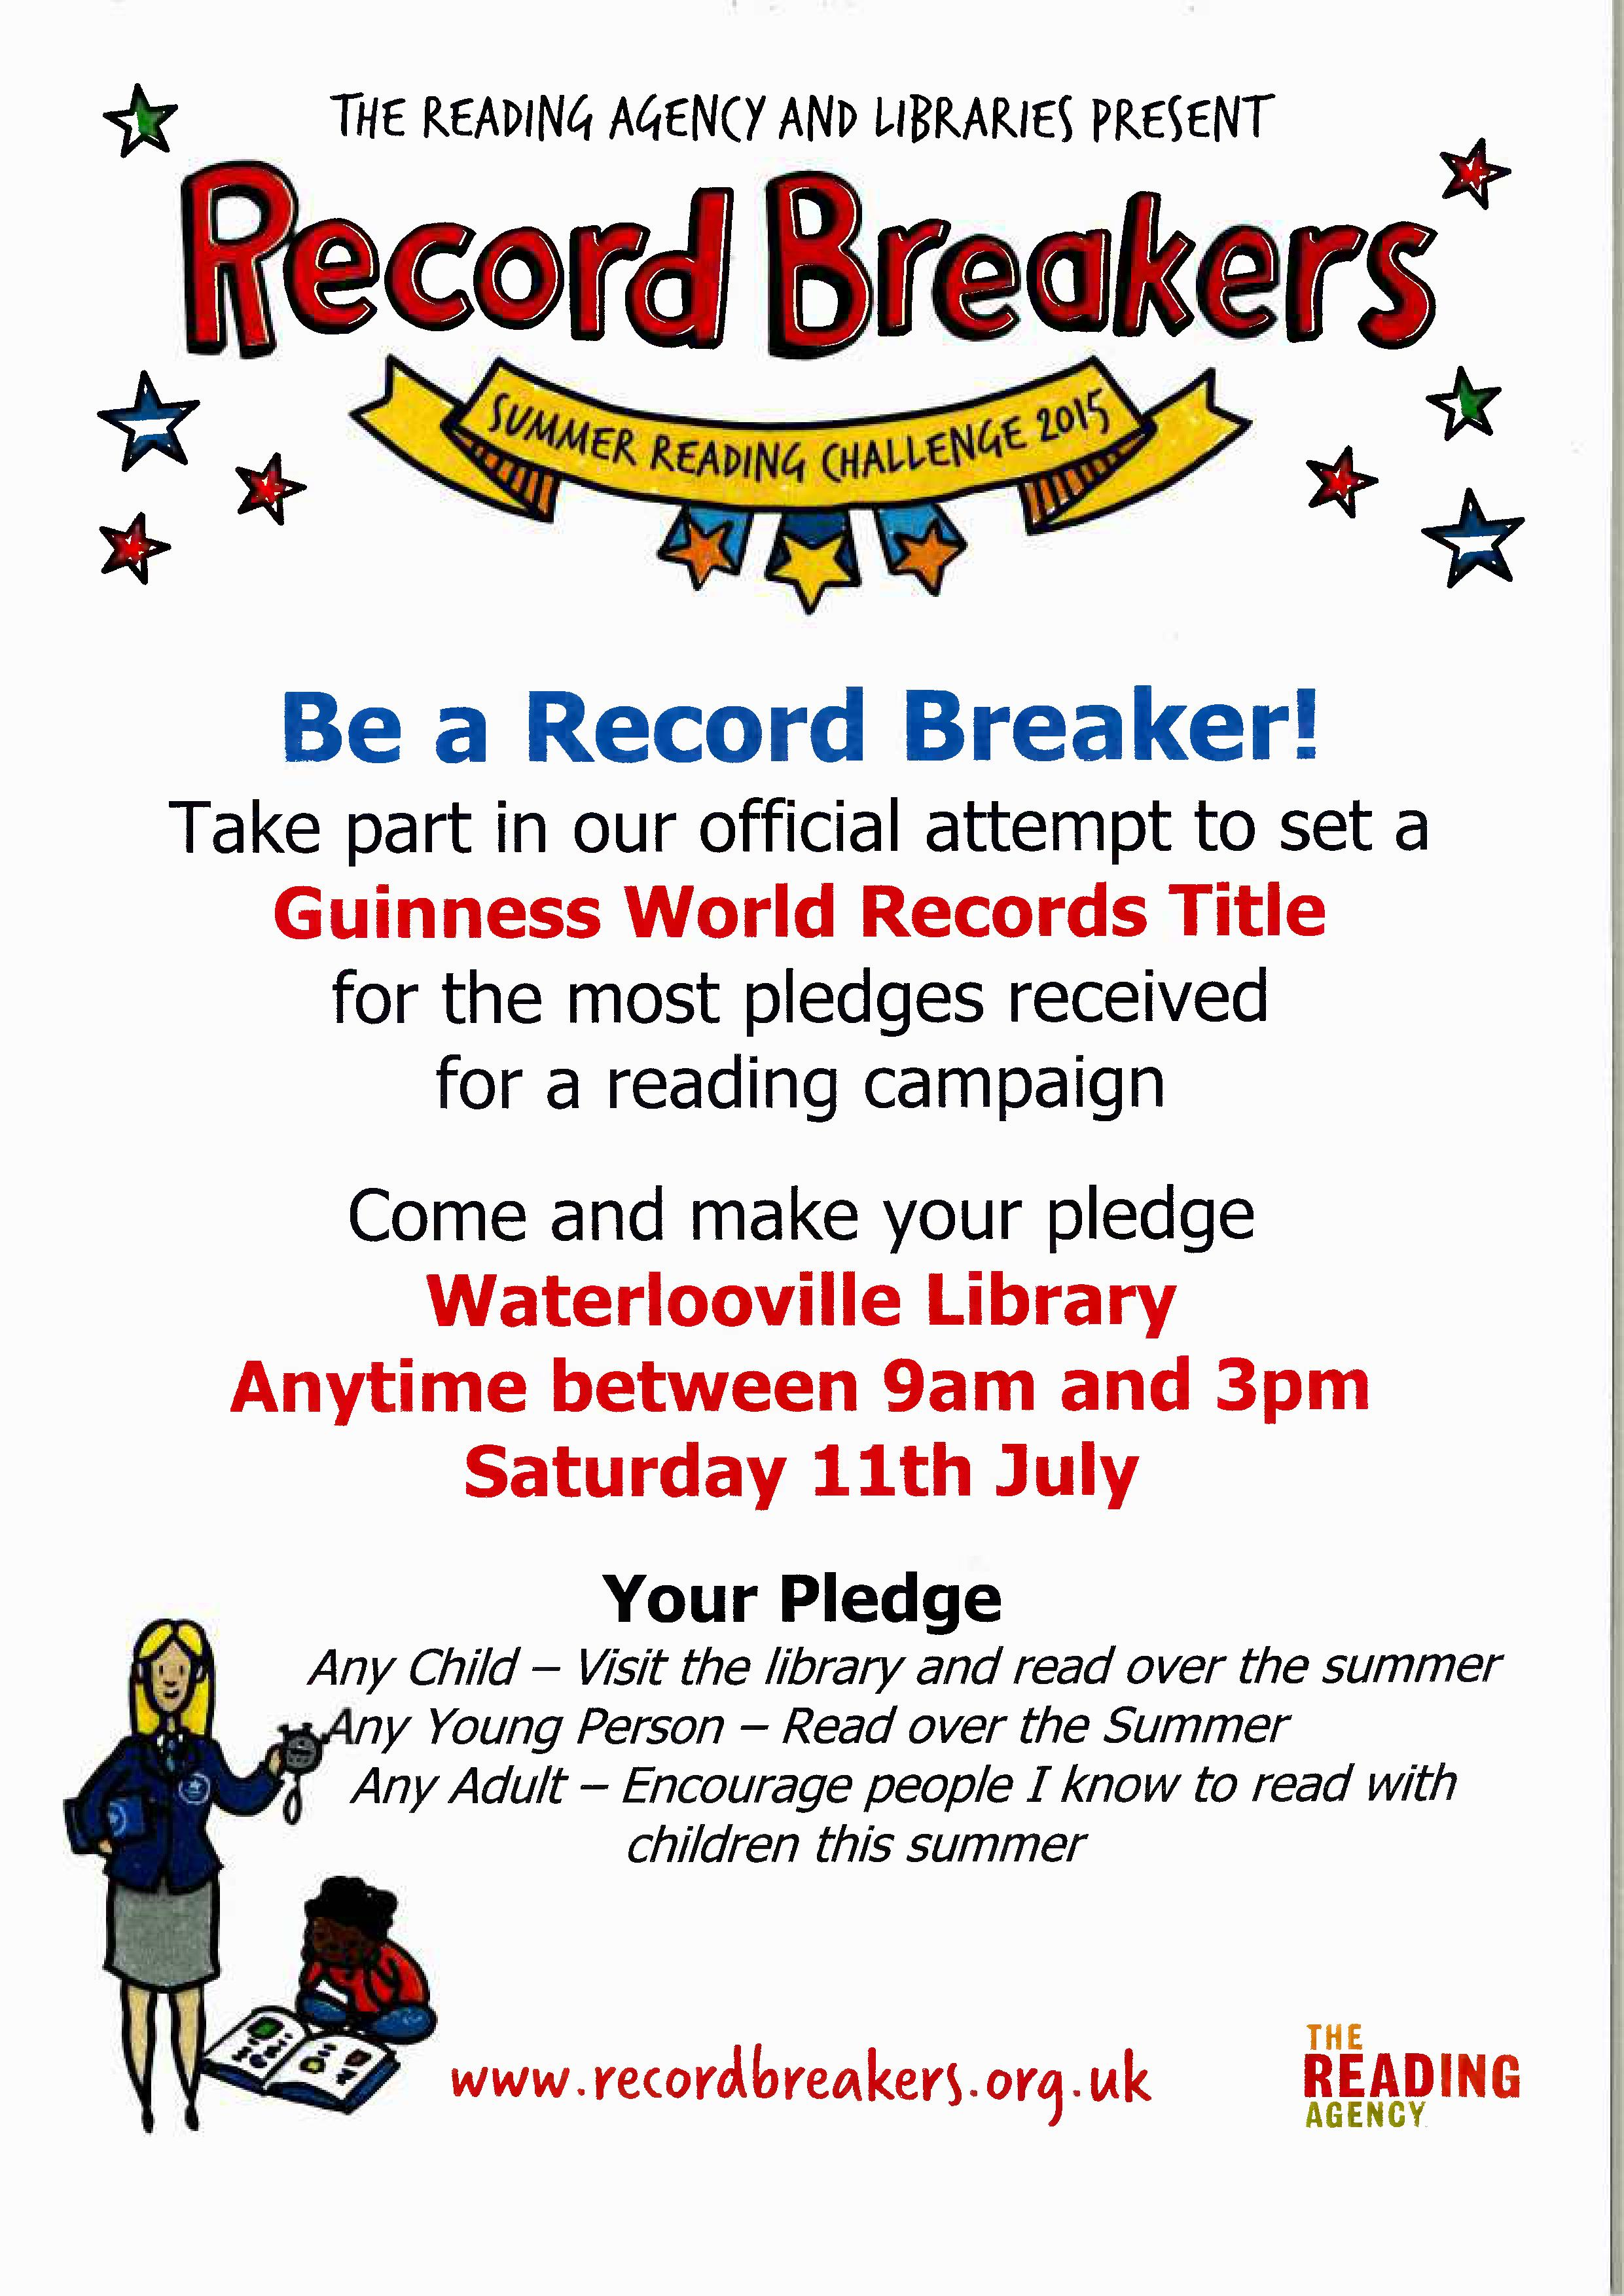 Be a Record Breaker at Waterlooville Library!